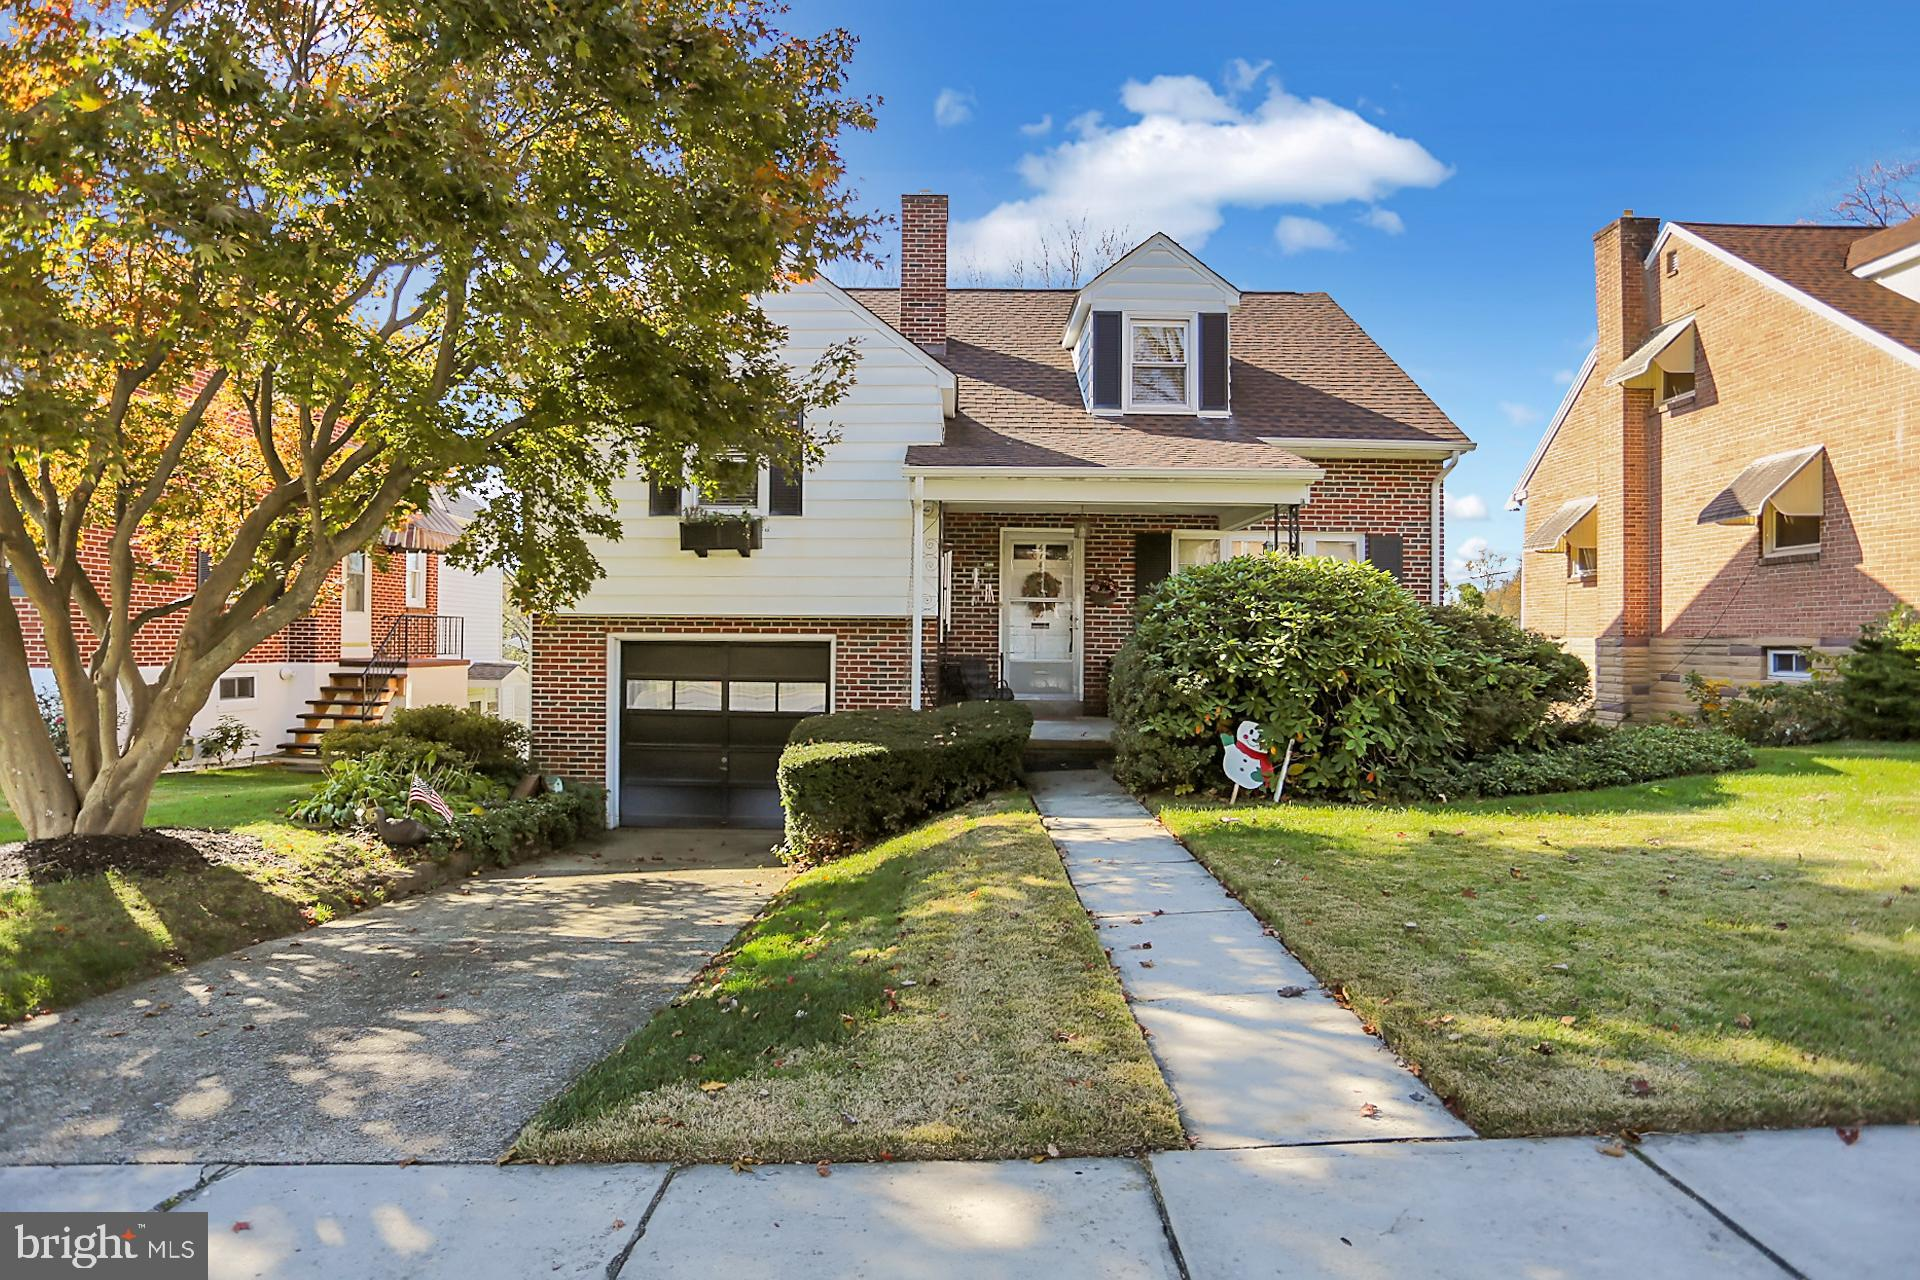 618 LAWRENCE AVENUE, READING, PA 19609